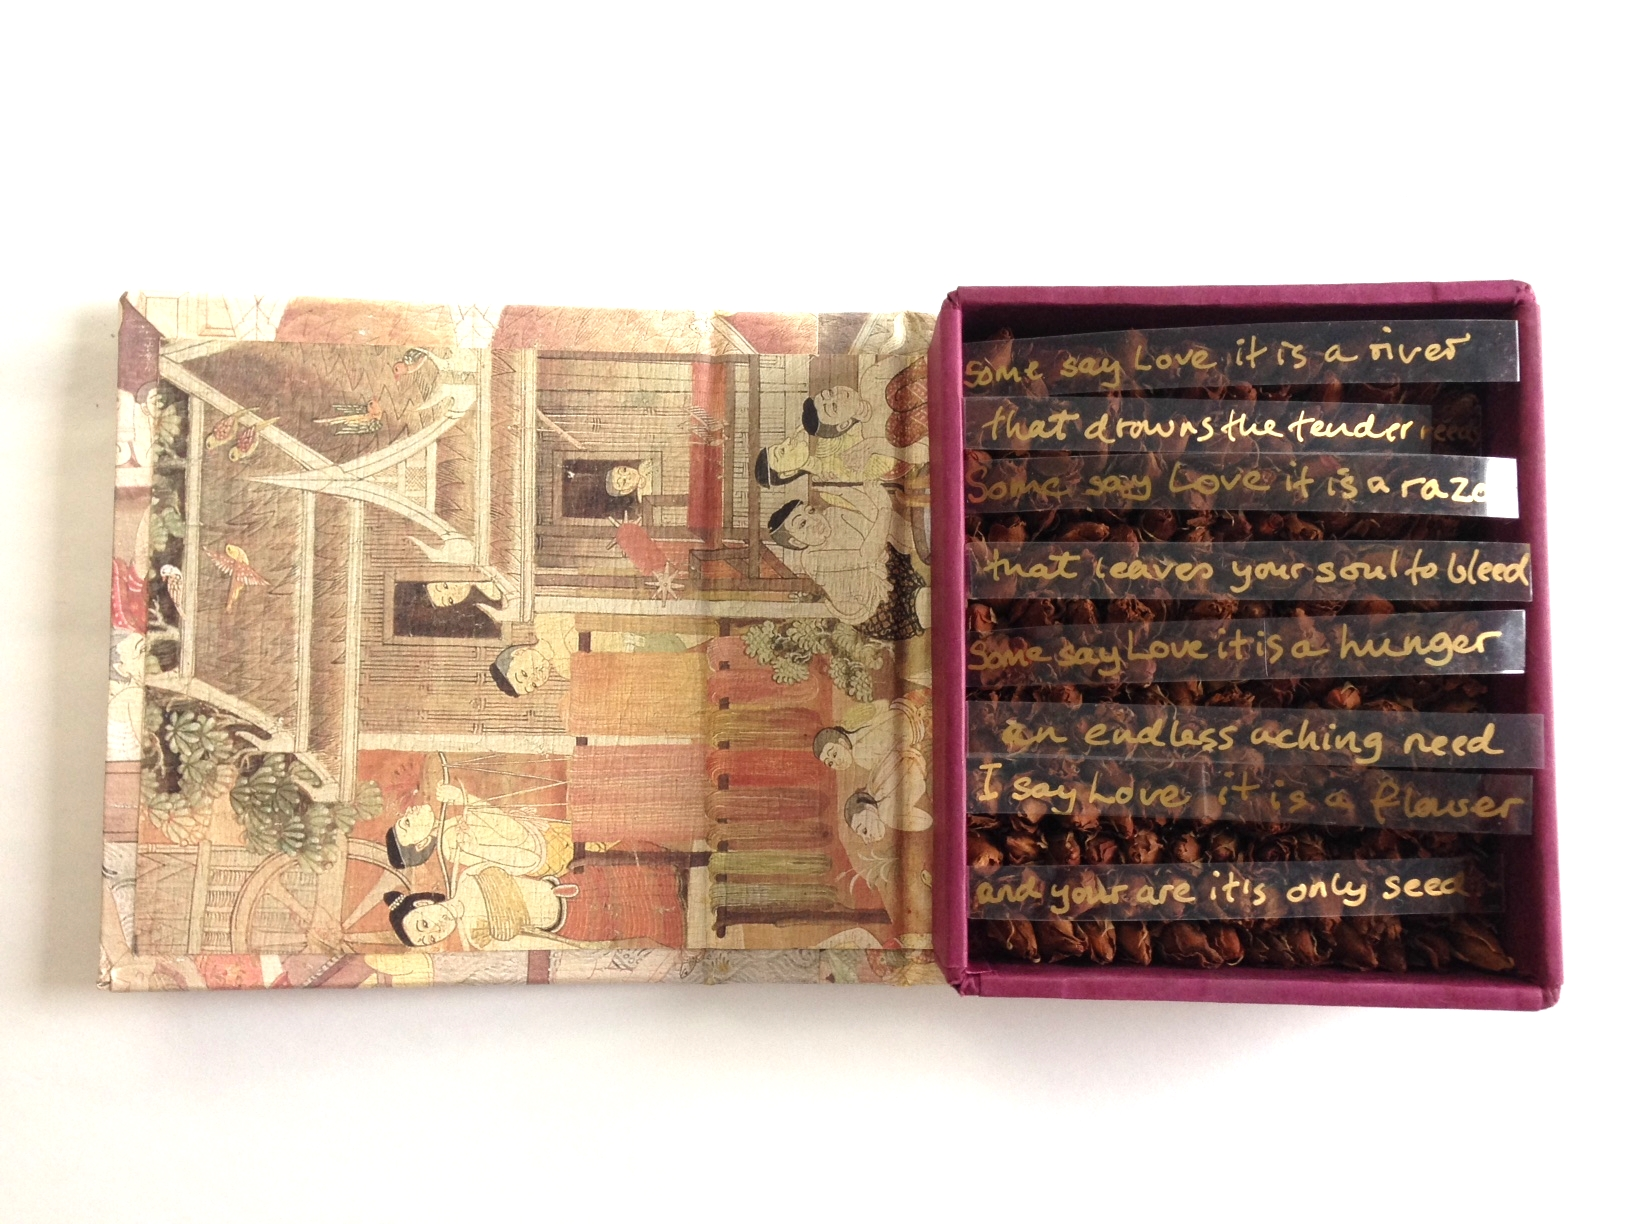 Some say love It is a river  ArtistsBook.1999   © Ida Montague  Inspiration drawn from Bette Midler's rendition of Some Say Love It Is a River.... Thebook features tiny dried rose buds overlaid with the song lyrics.